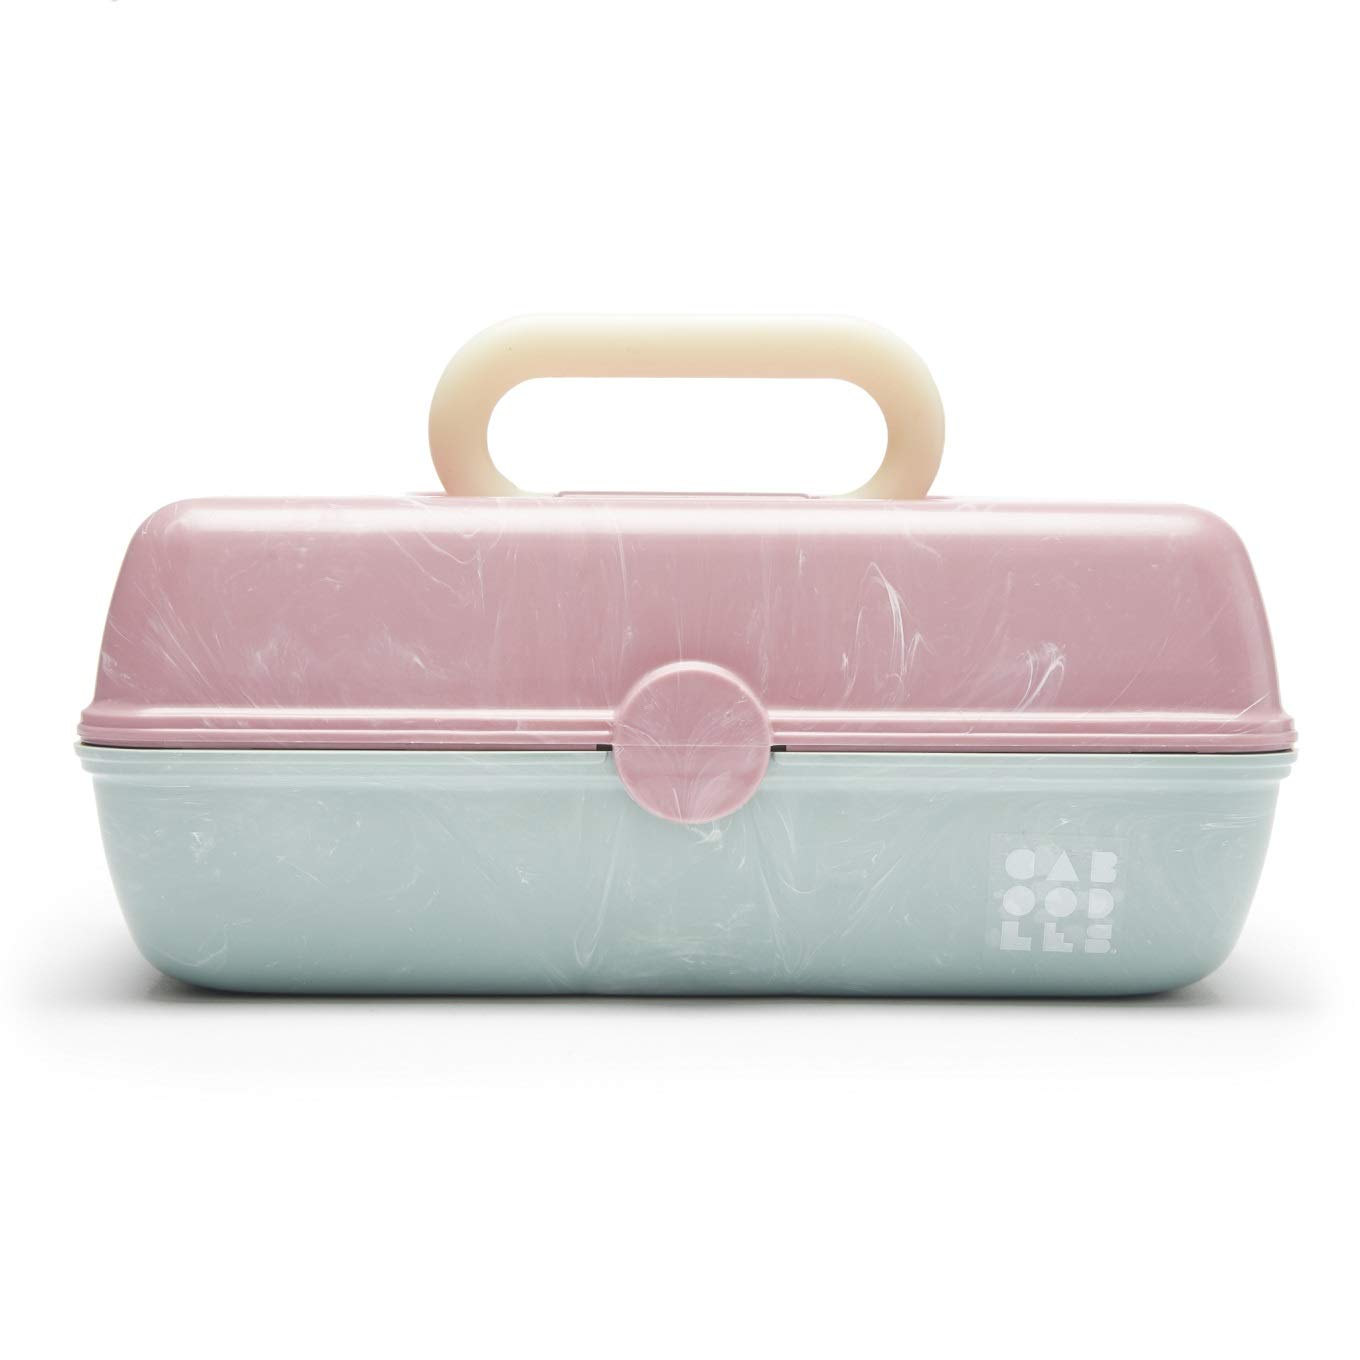 Caboodles On-The-Go Girl Retro Case1 , Pale Pink Lid and Sage Base